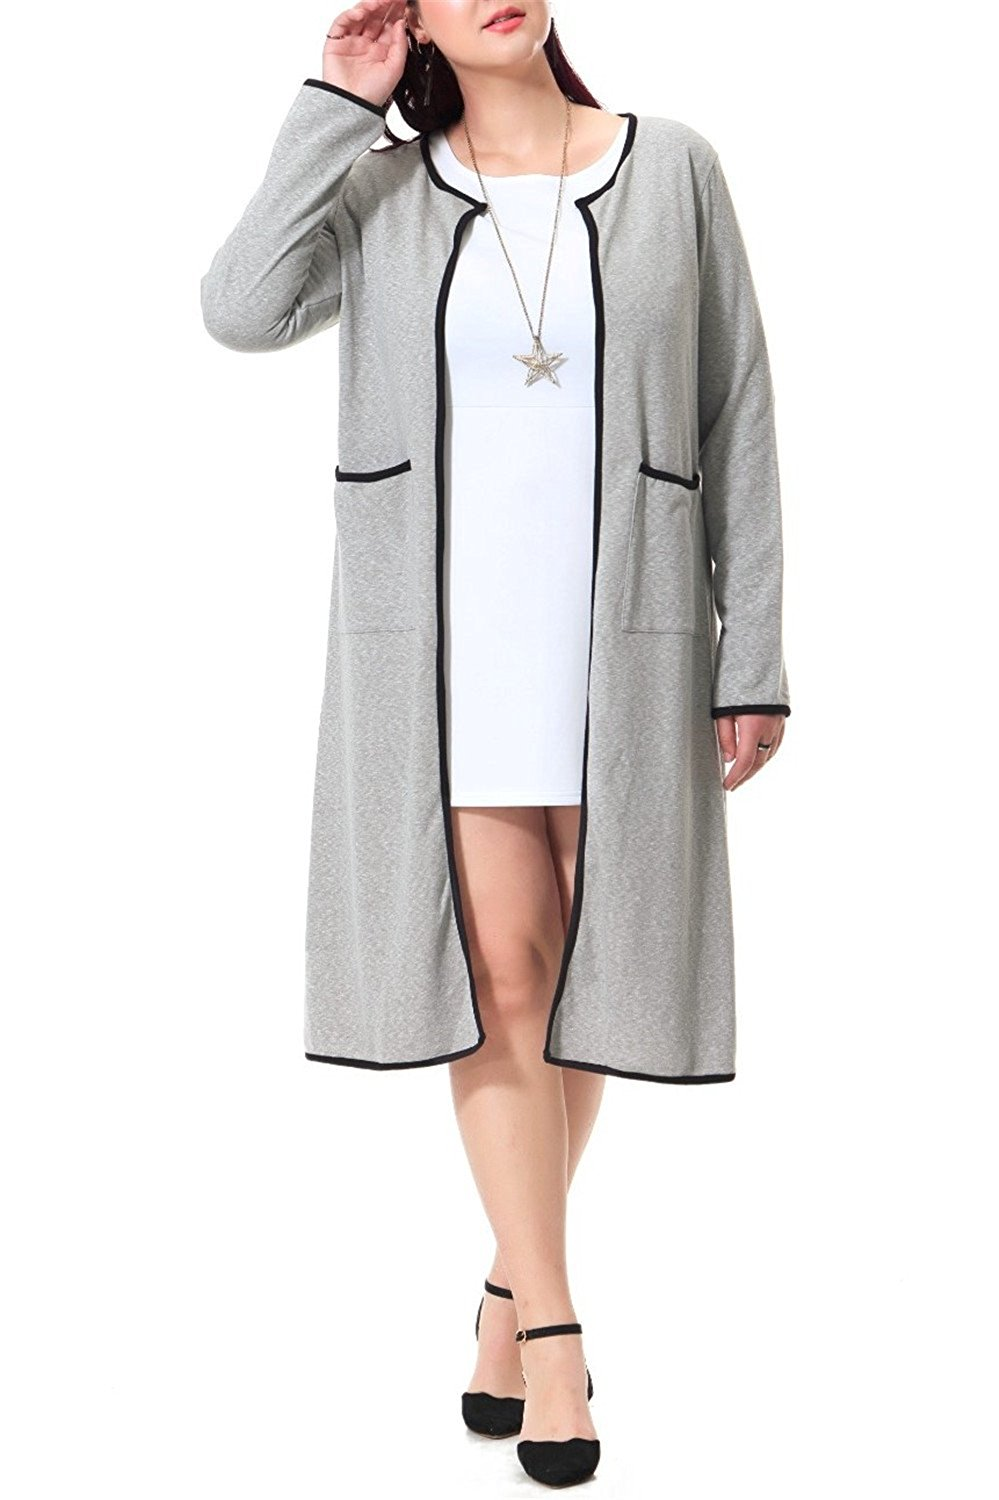 e5122b7bb1be9 Get Quotations · Klemsomava Plus Size Long Maxi Coat With Pockets Gray  Casual Coat For Women Black Patchwork Outerwear